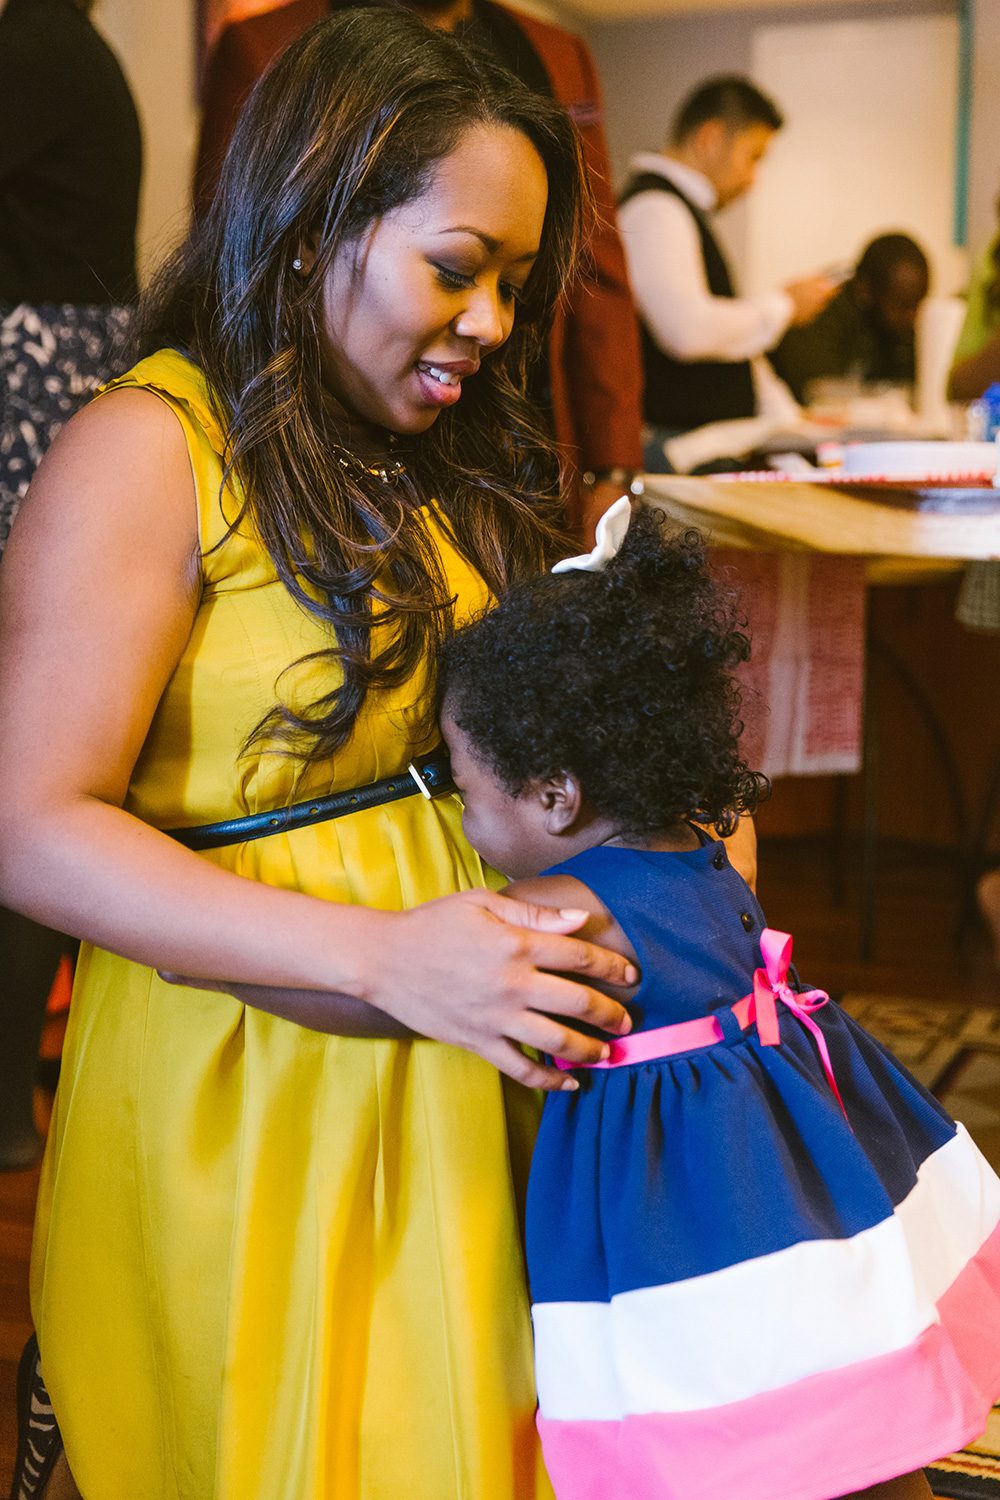 WEB_2015_April_BabyShower_EuniceDockery_0605.jpg